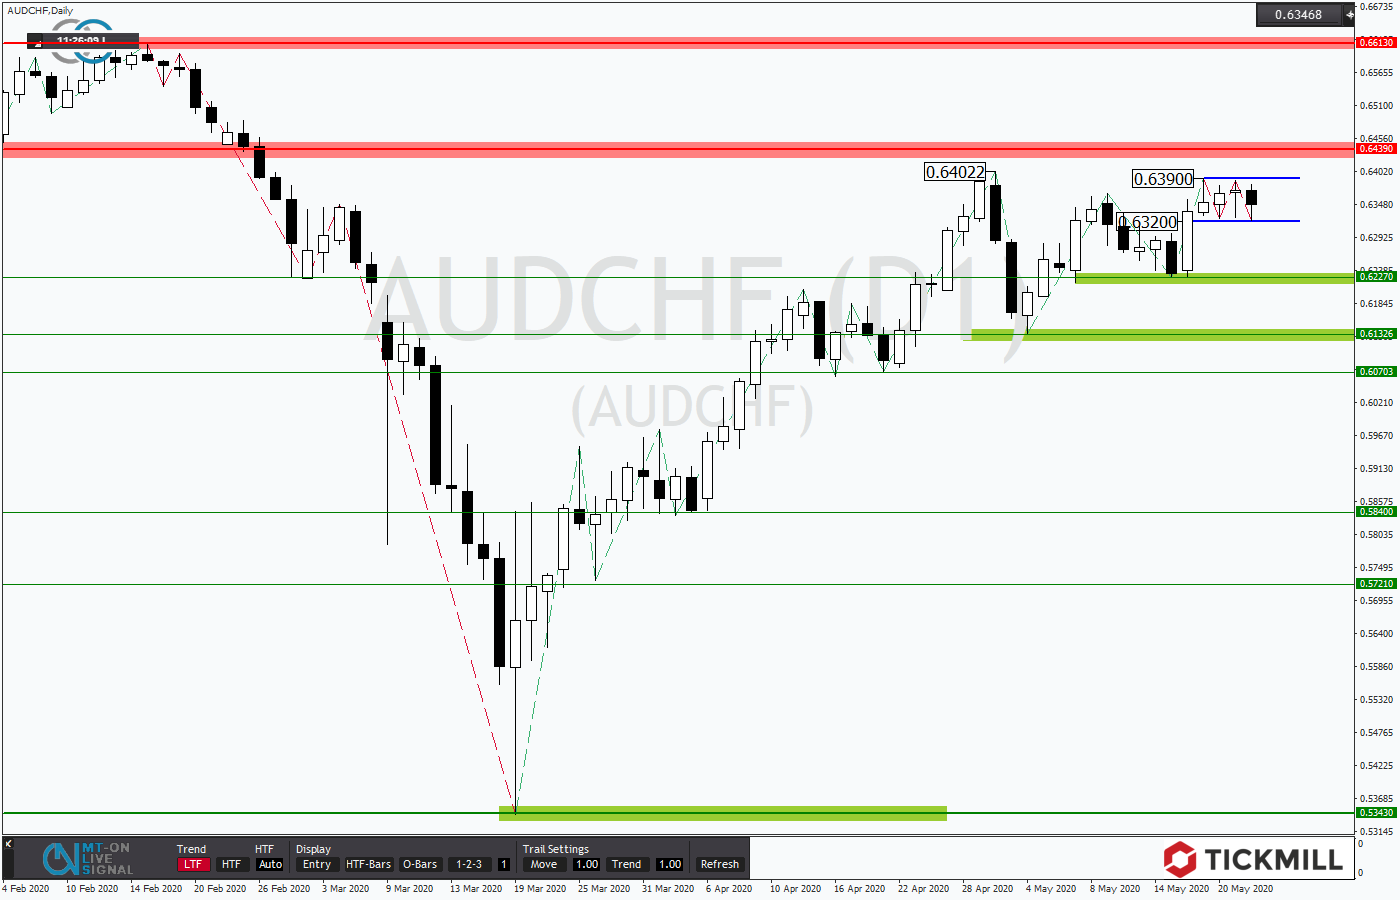 Tickmill-Analyse: AUDCHF mit hoher Flagge